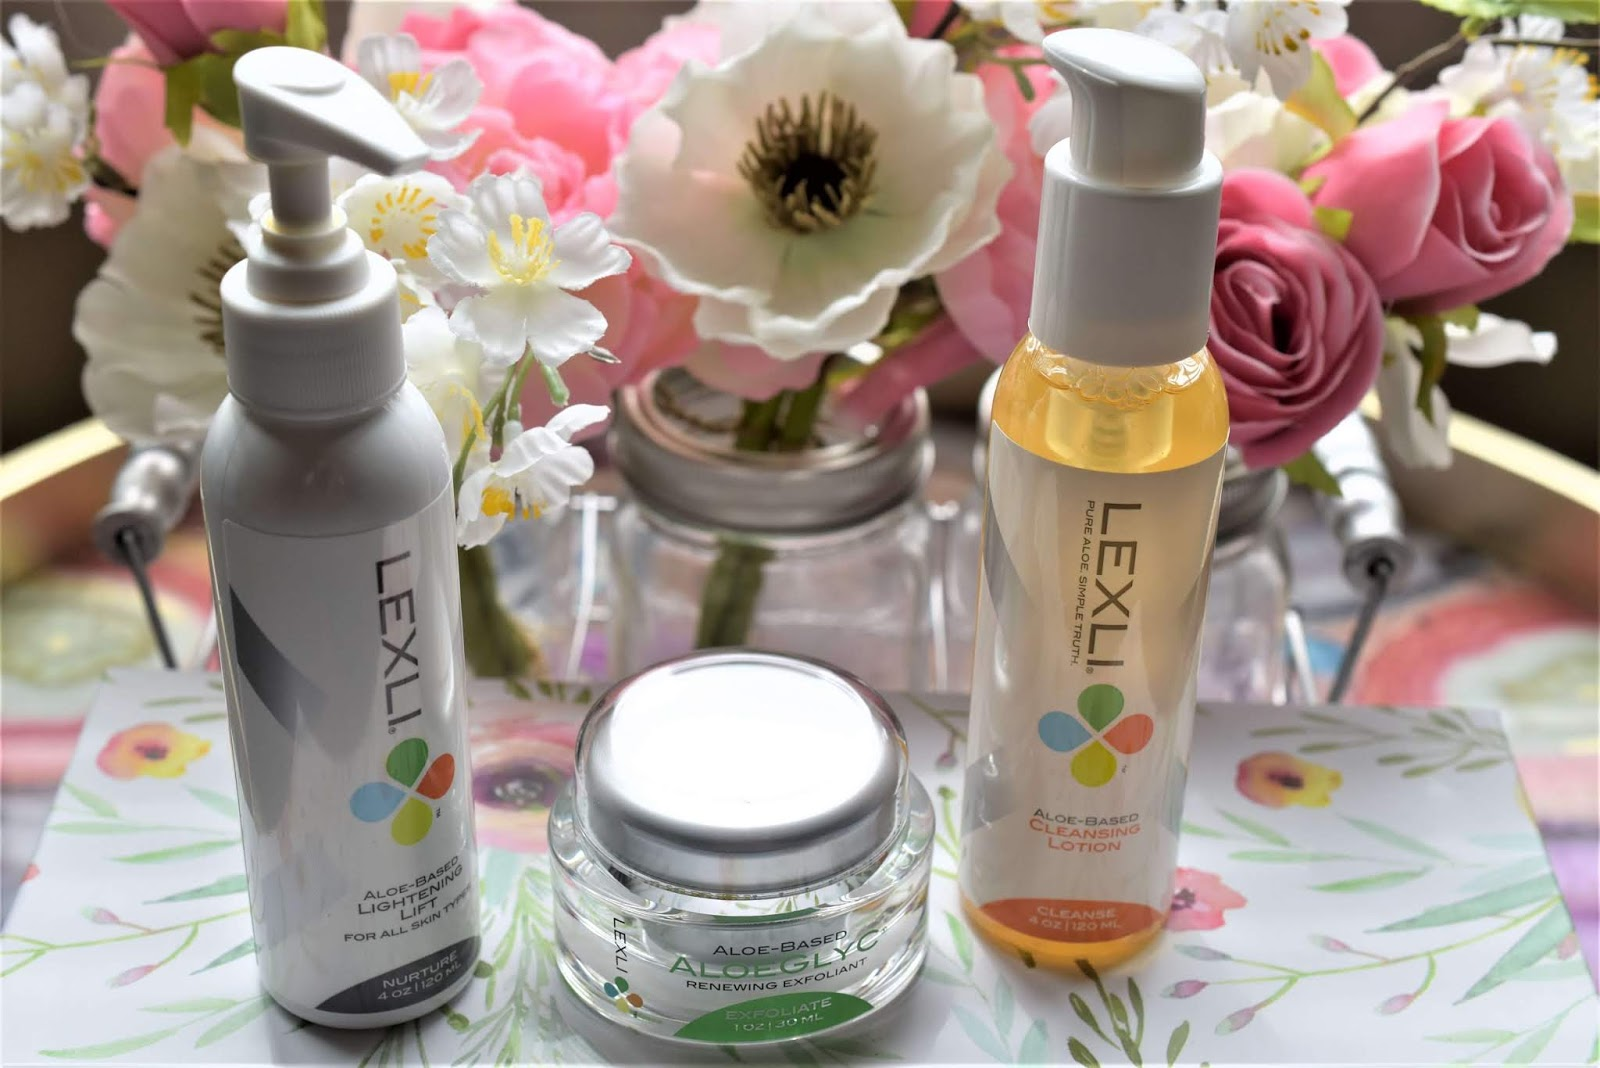 My Current Facial Skincare to Fade Dark Spots with Lexli